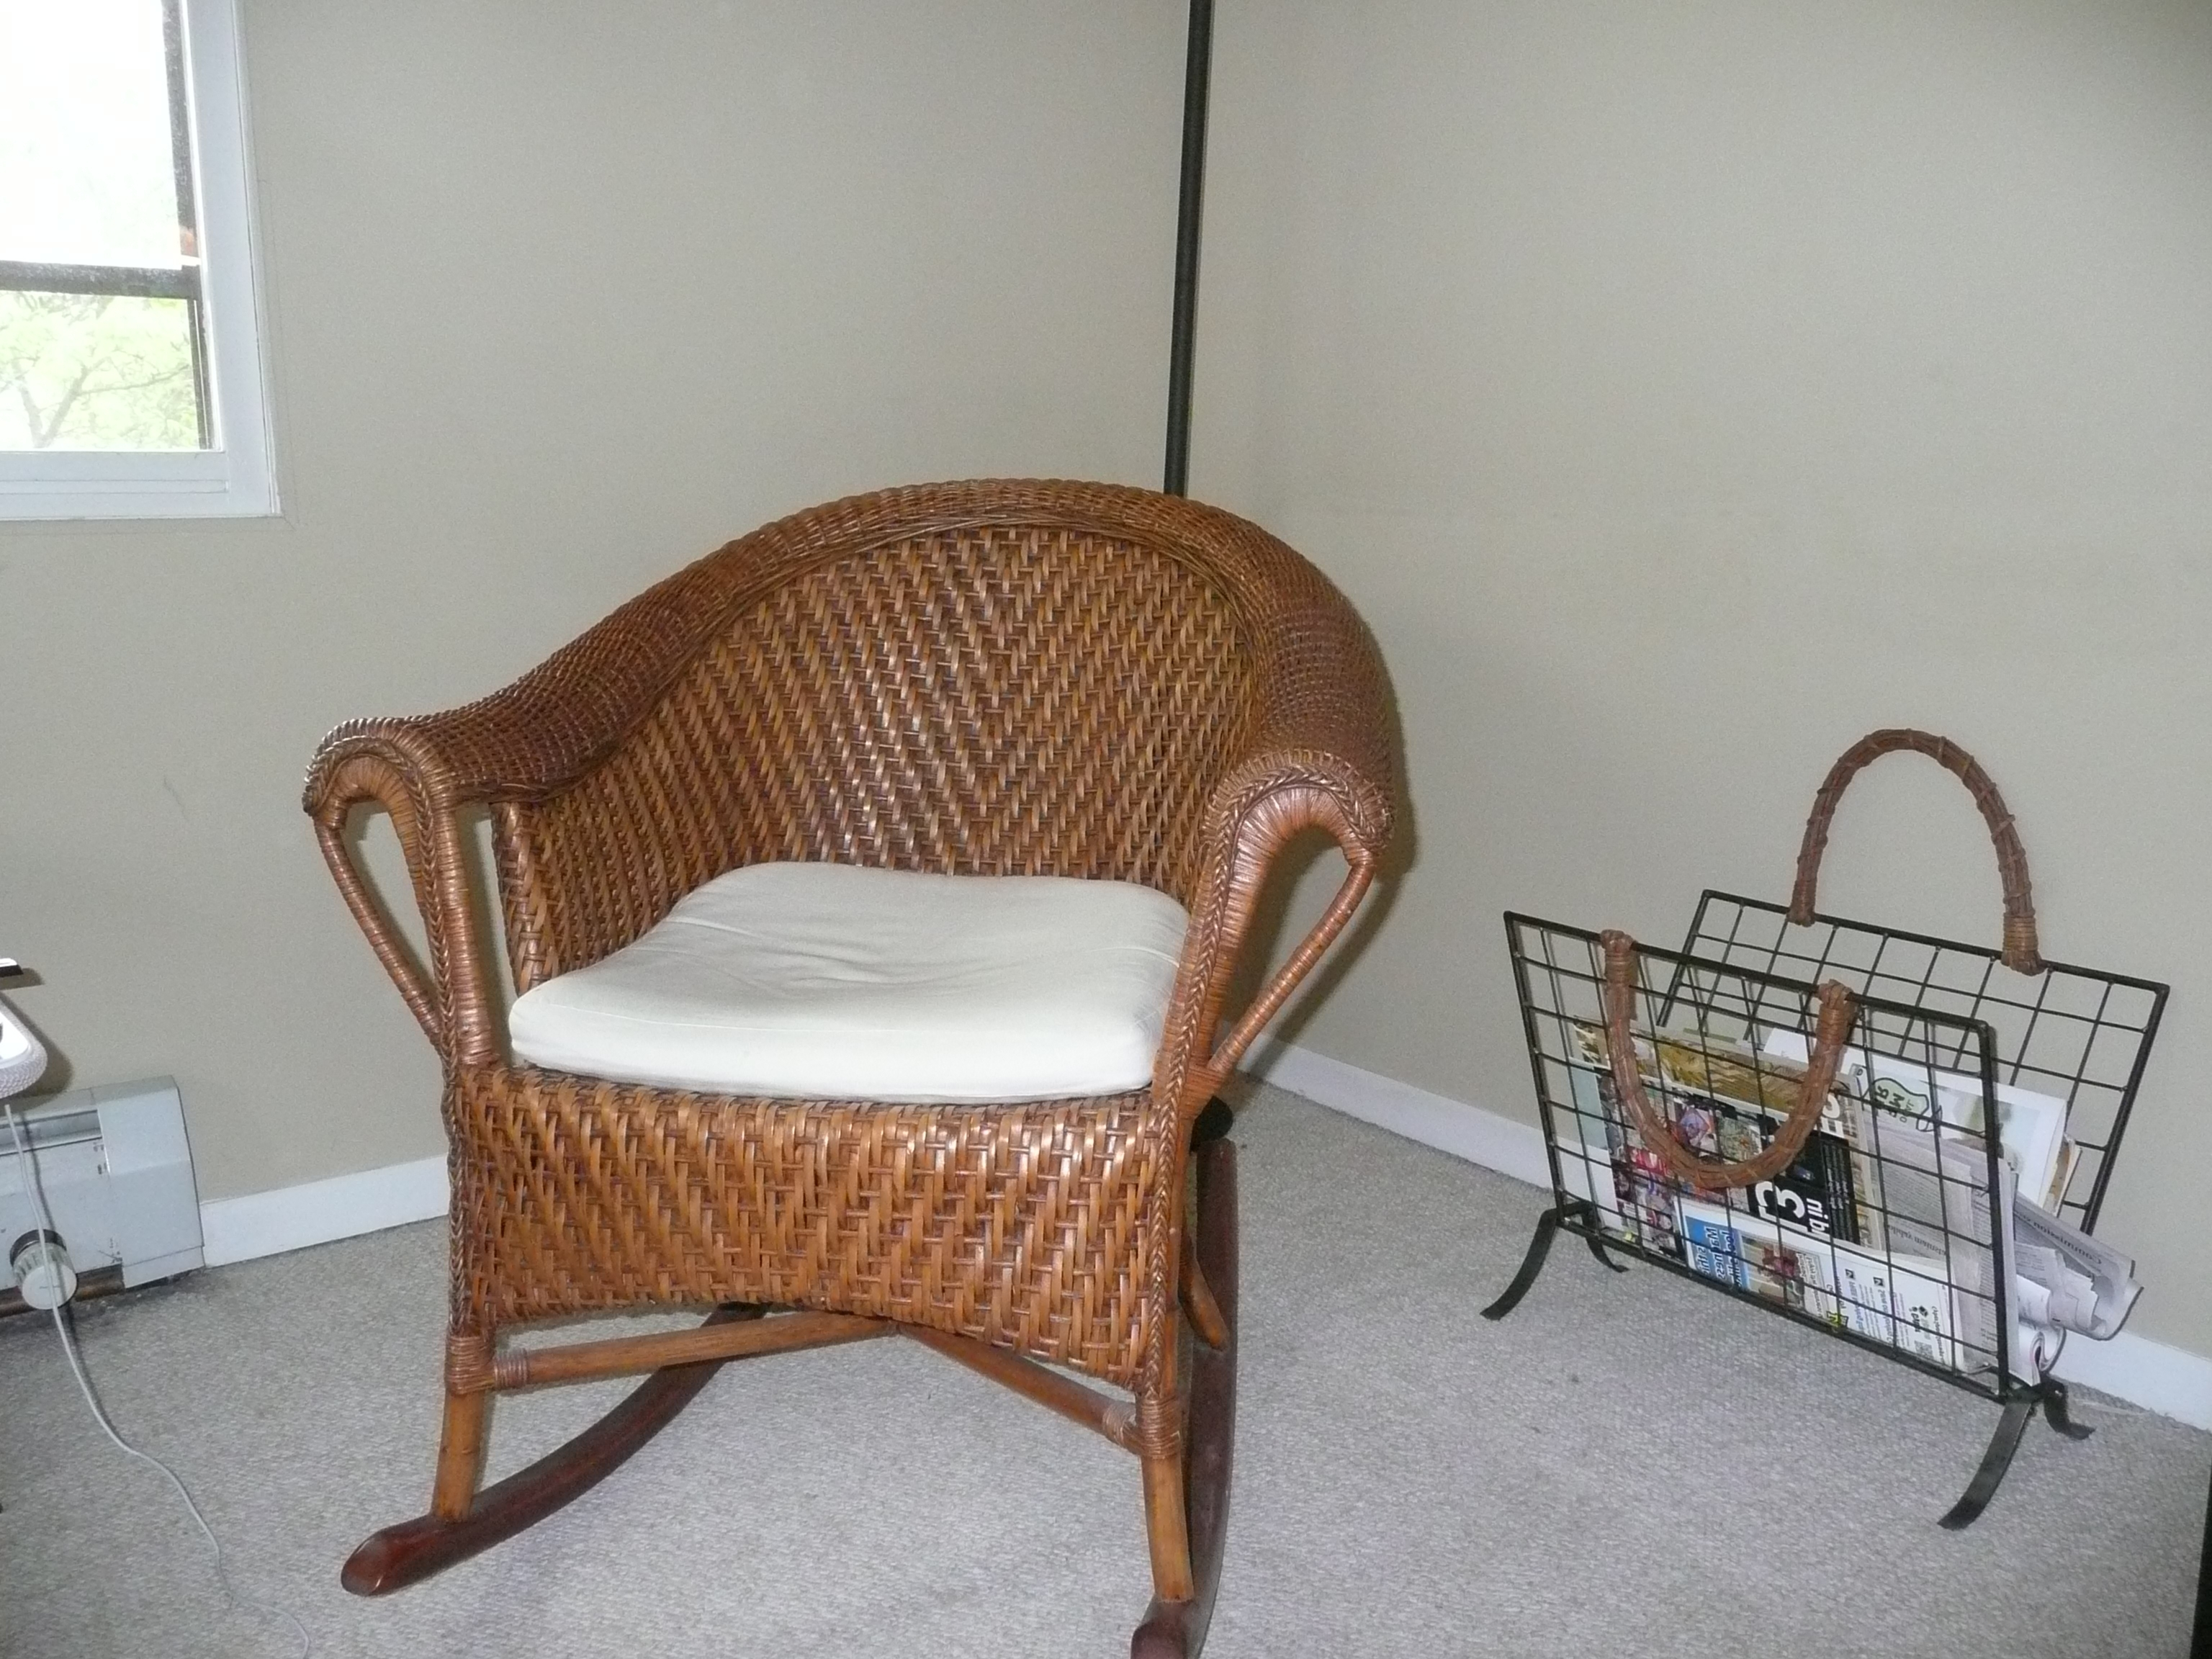 Latest Antique Wicker Rocking Chairs With Springs With Antique Wicker Rocking Chair With Springs (View 8 of 15)